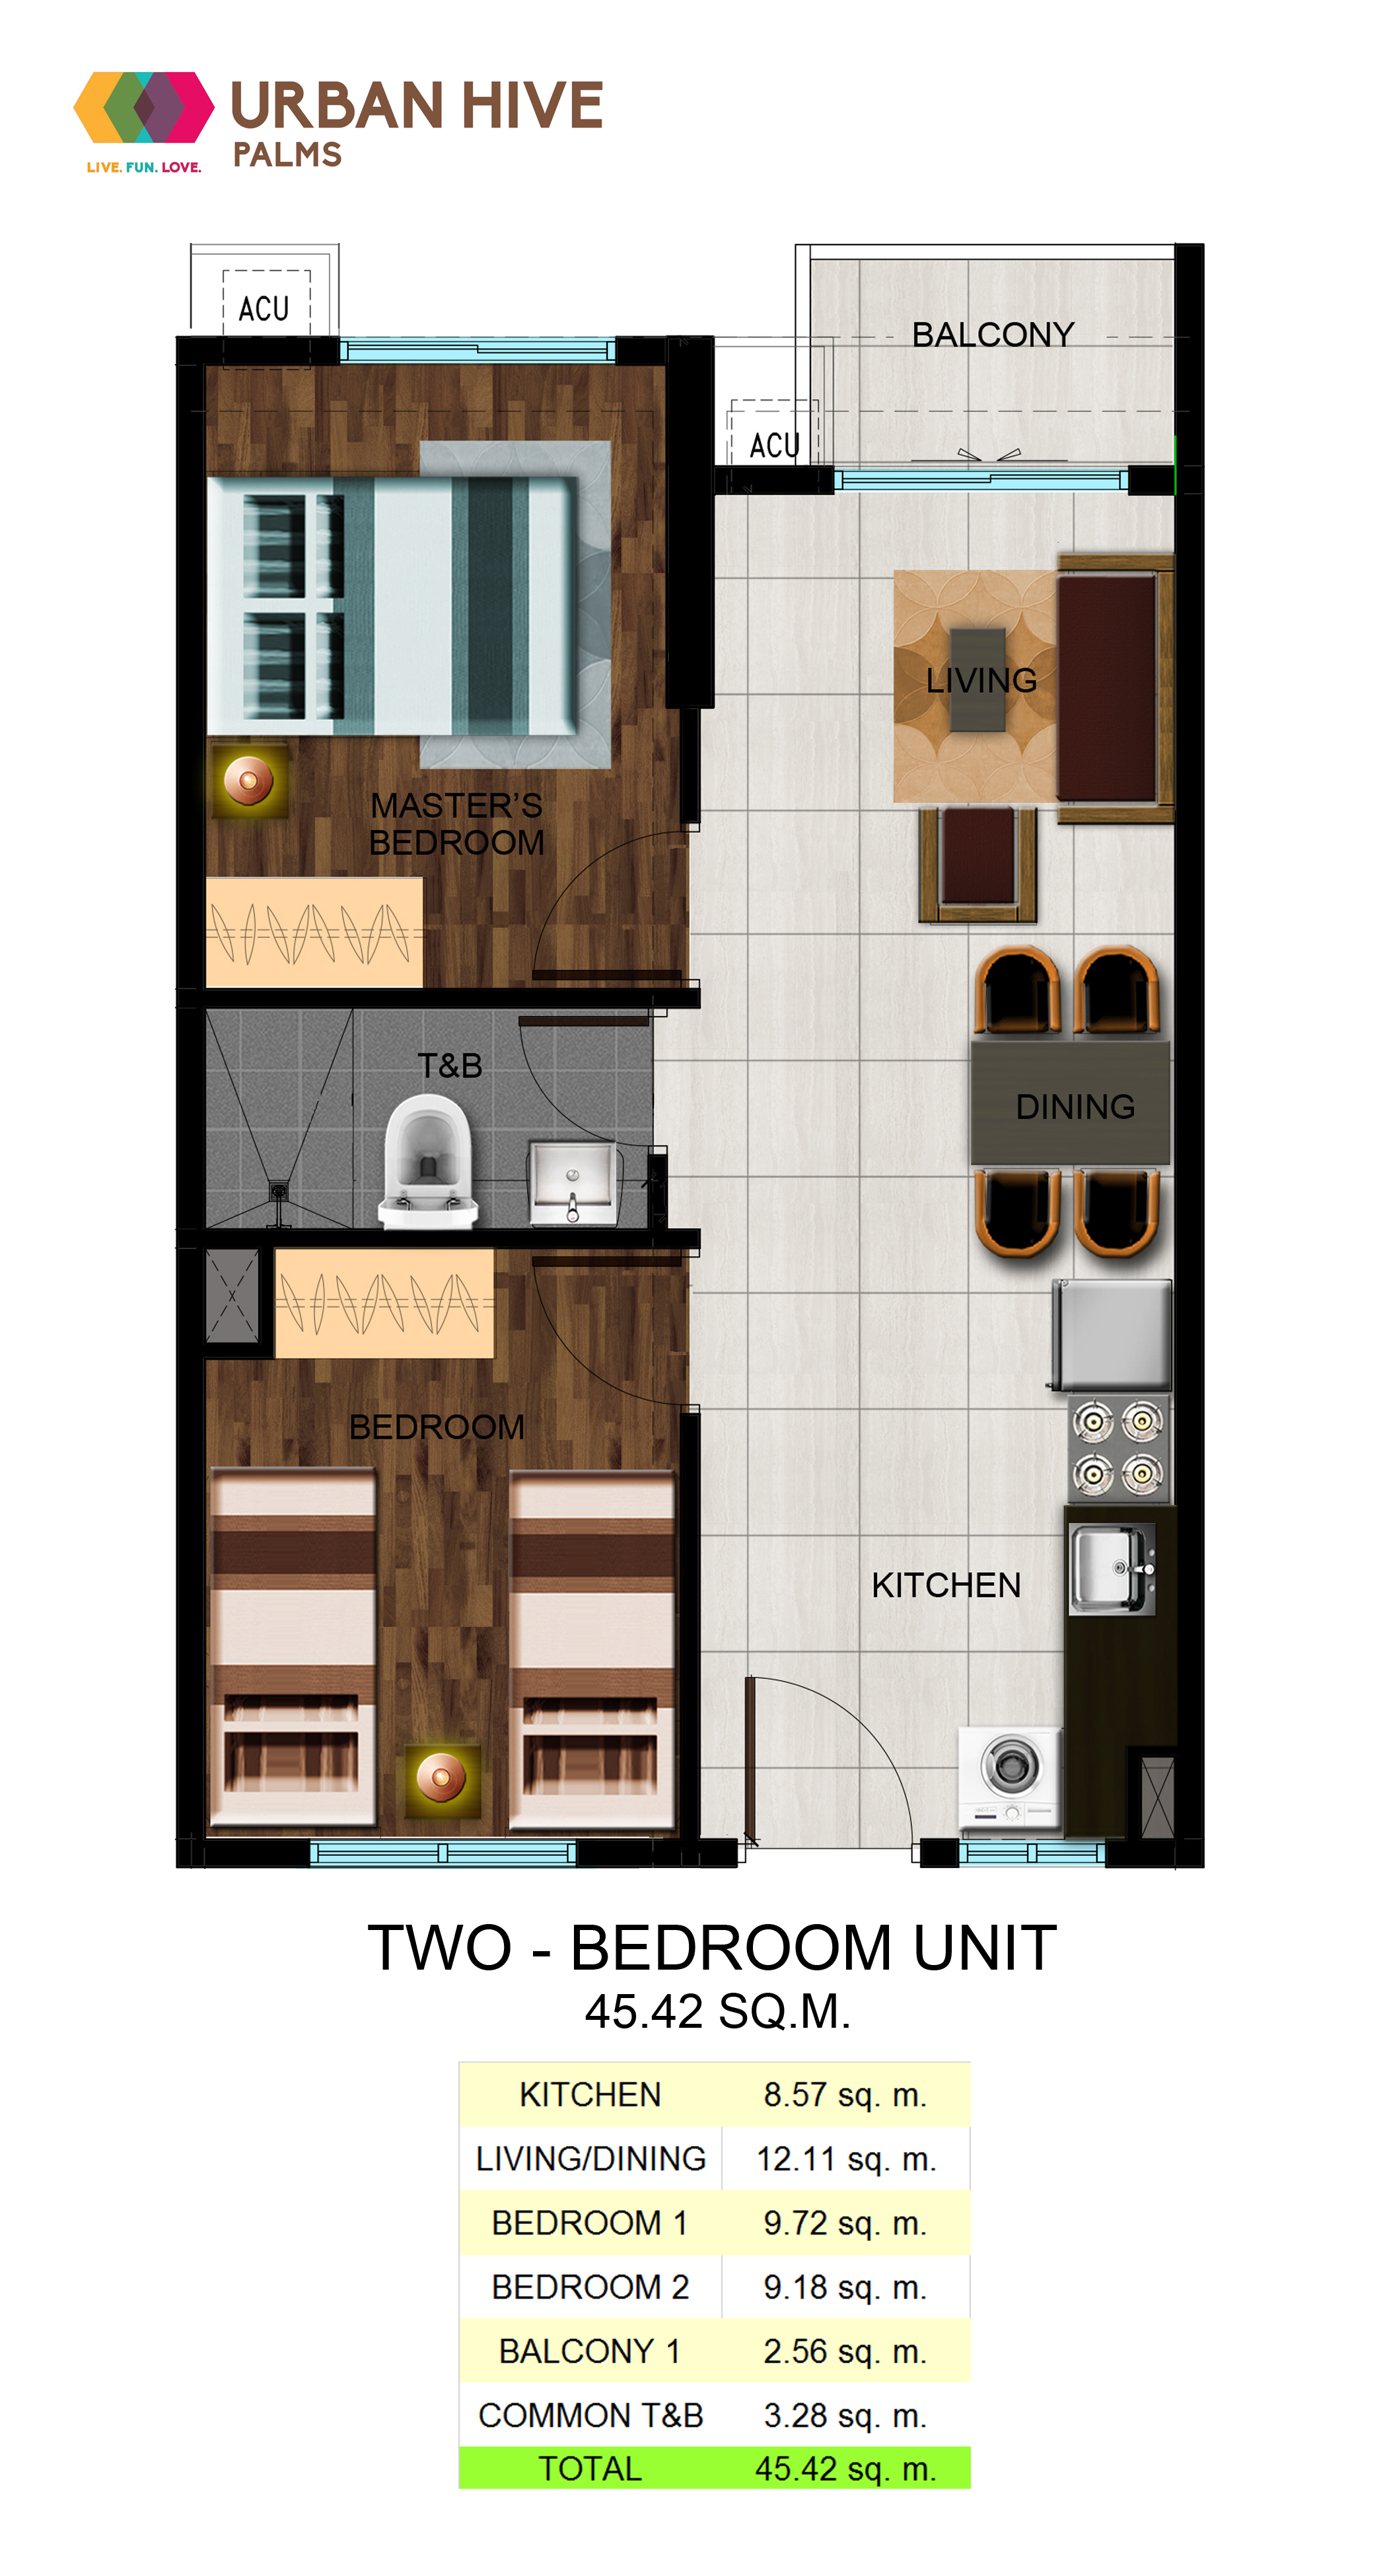 Urban Hive Palms Two Bedroom Unit- 45.42 sq.m